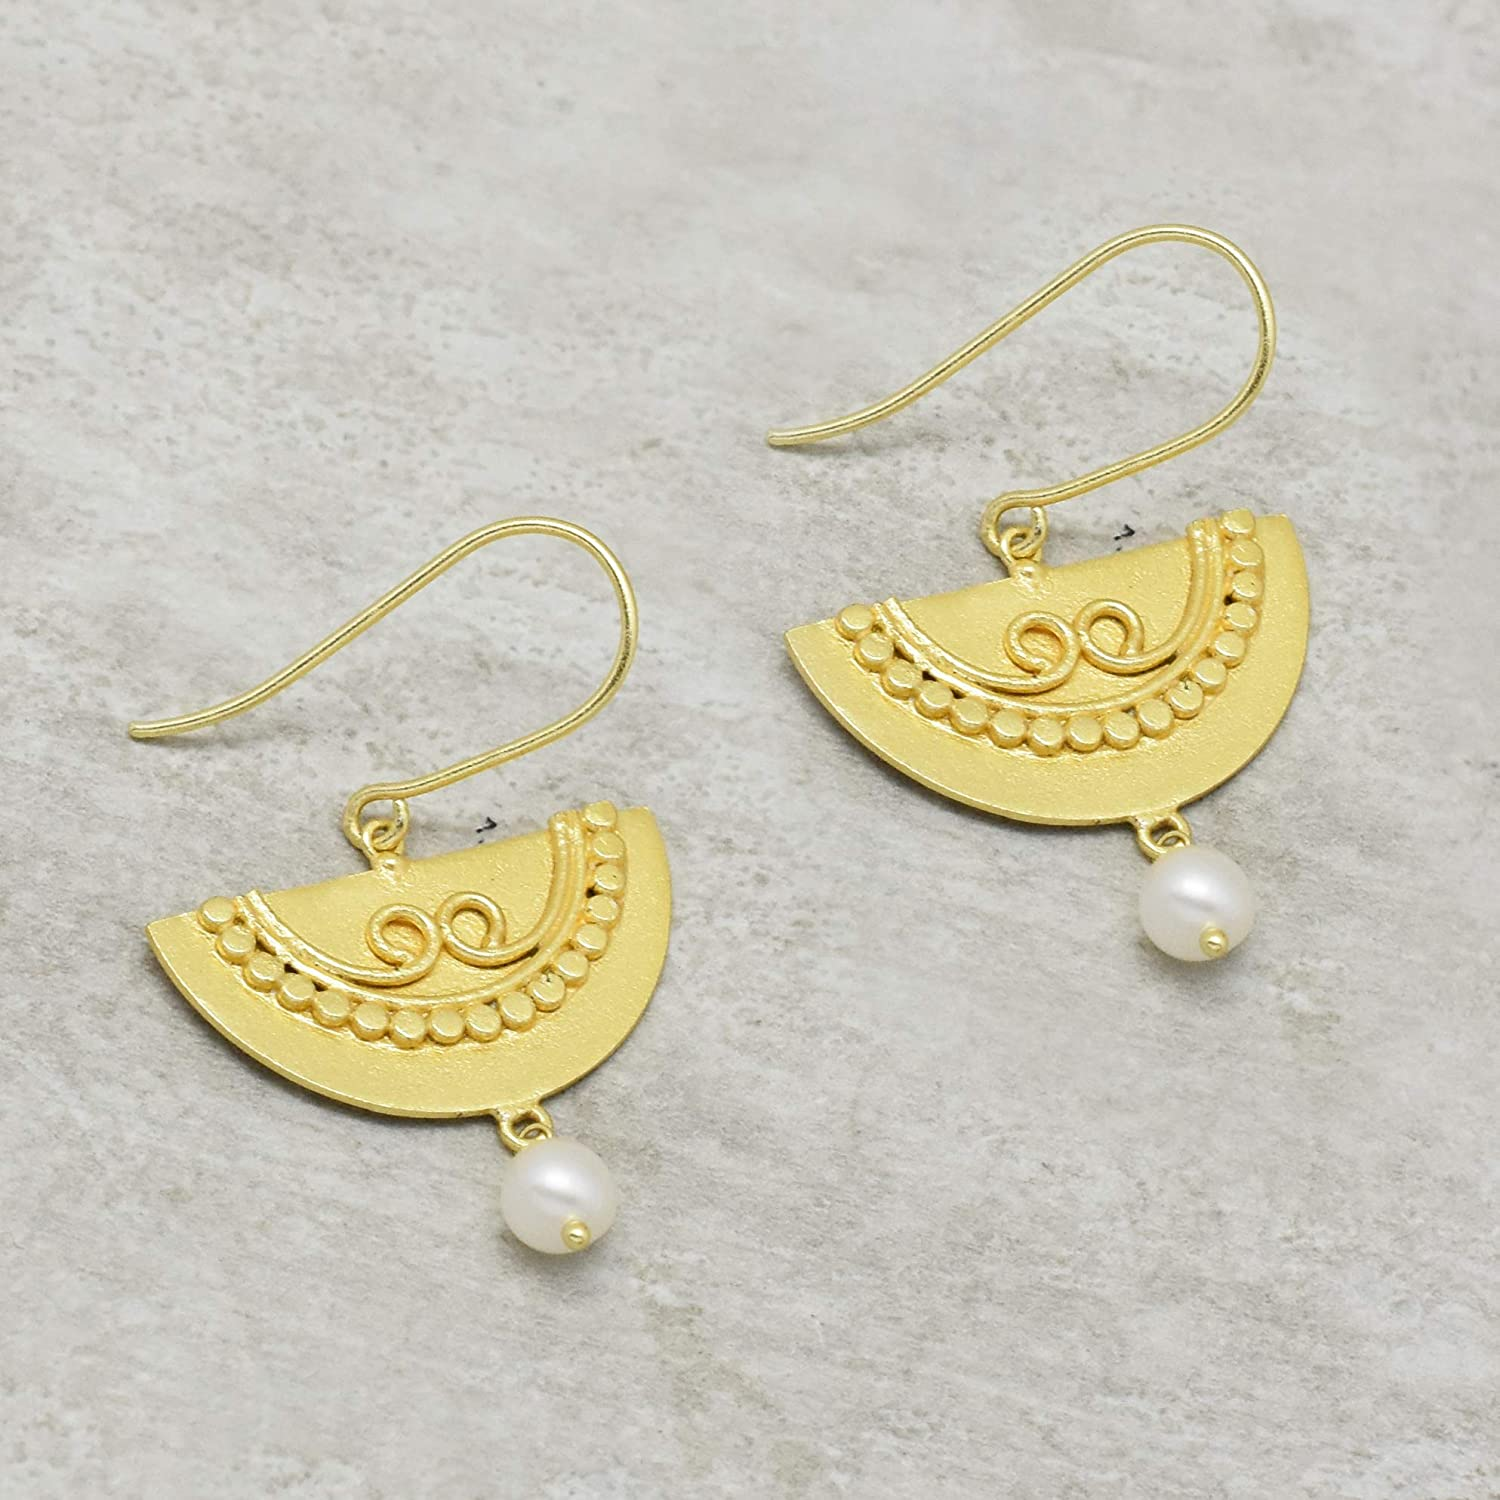 The V Collection earrings 22k gold plated handcrafted pearl dangling earrings for women and girls